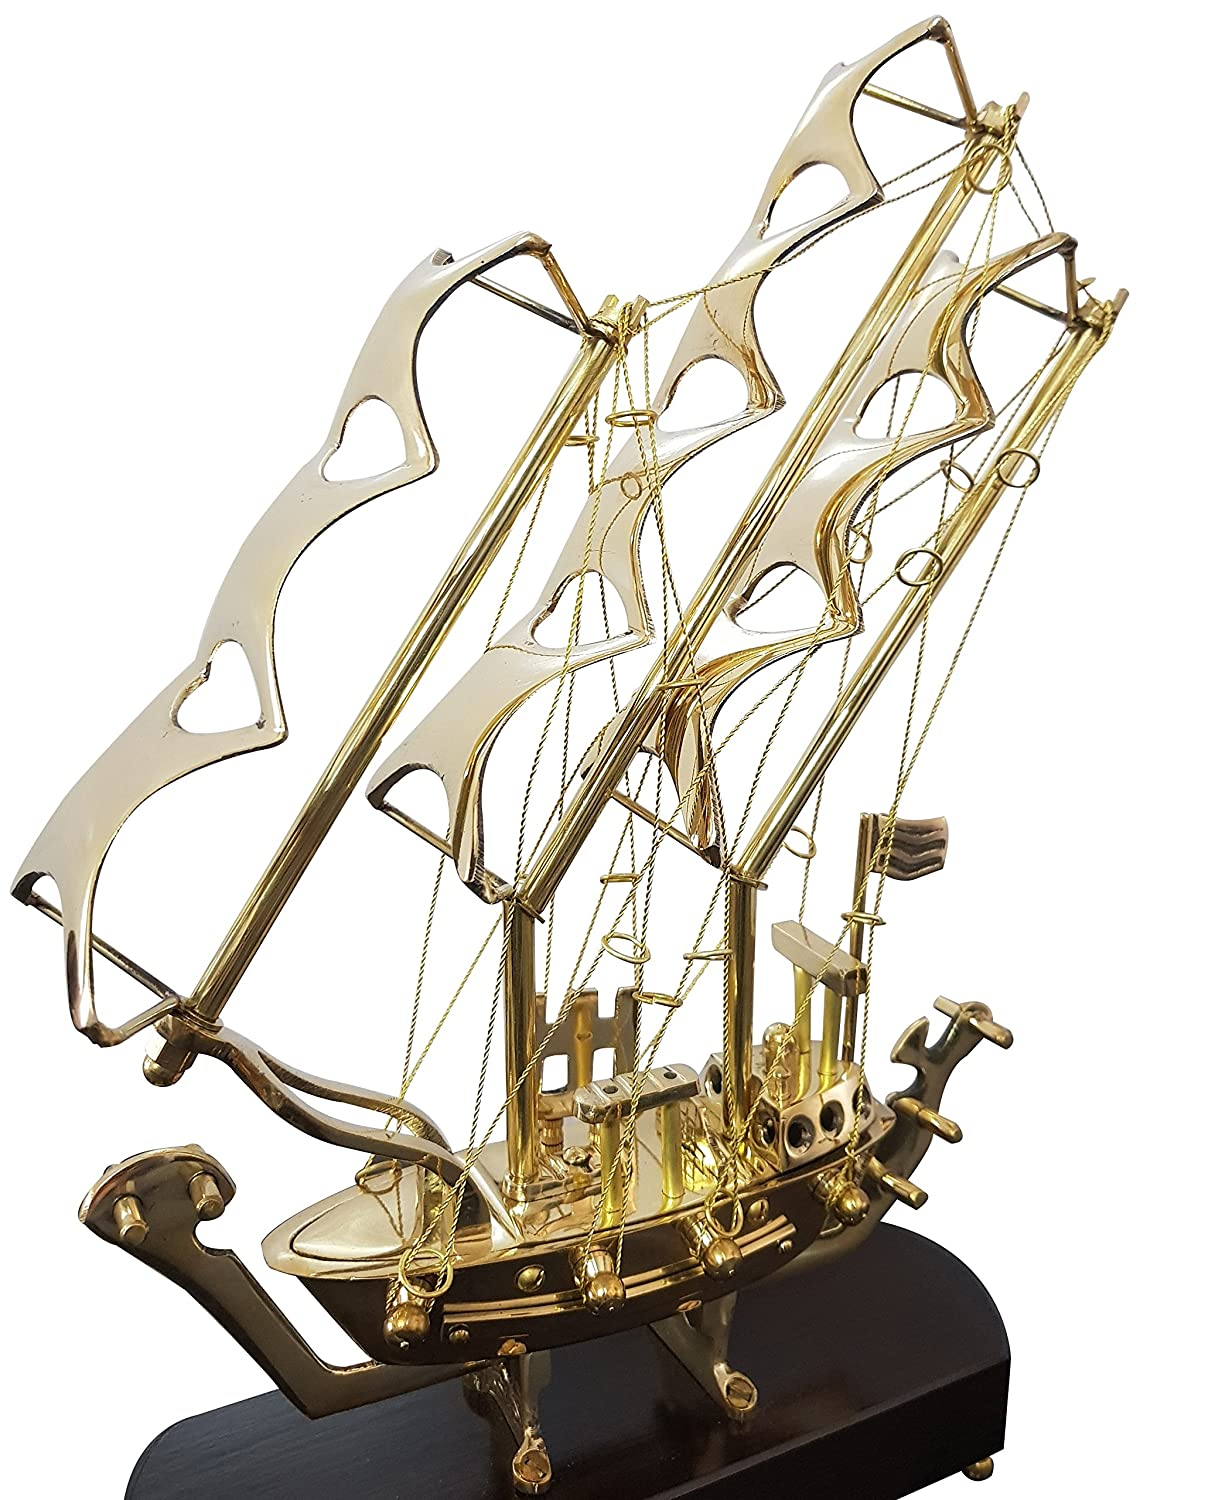 Authentic Decorative Brass Vintage Marine Table Decoratine Ship with Wooden Base Marine Handmade Nautical Article Unique Collection collectiblesBuy ZMP3184